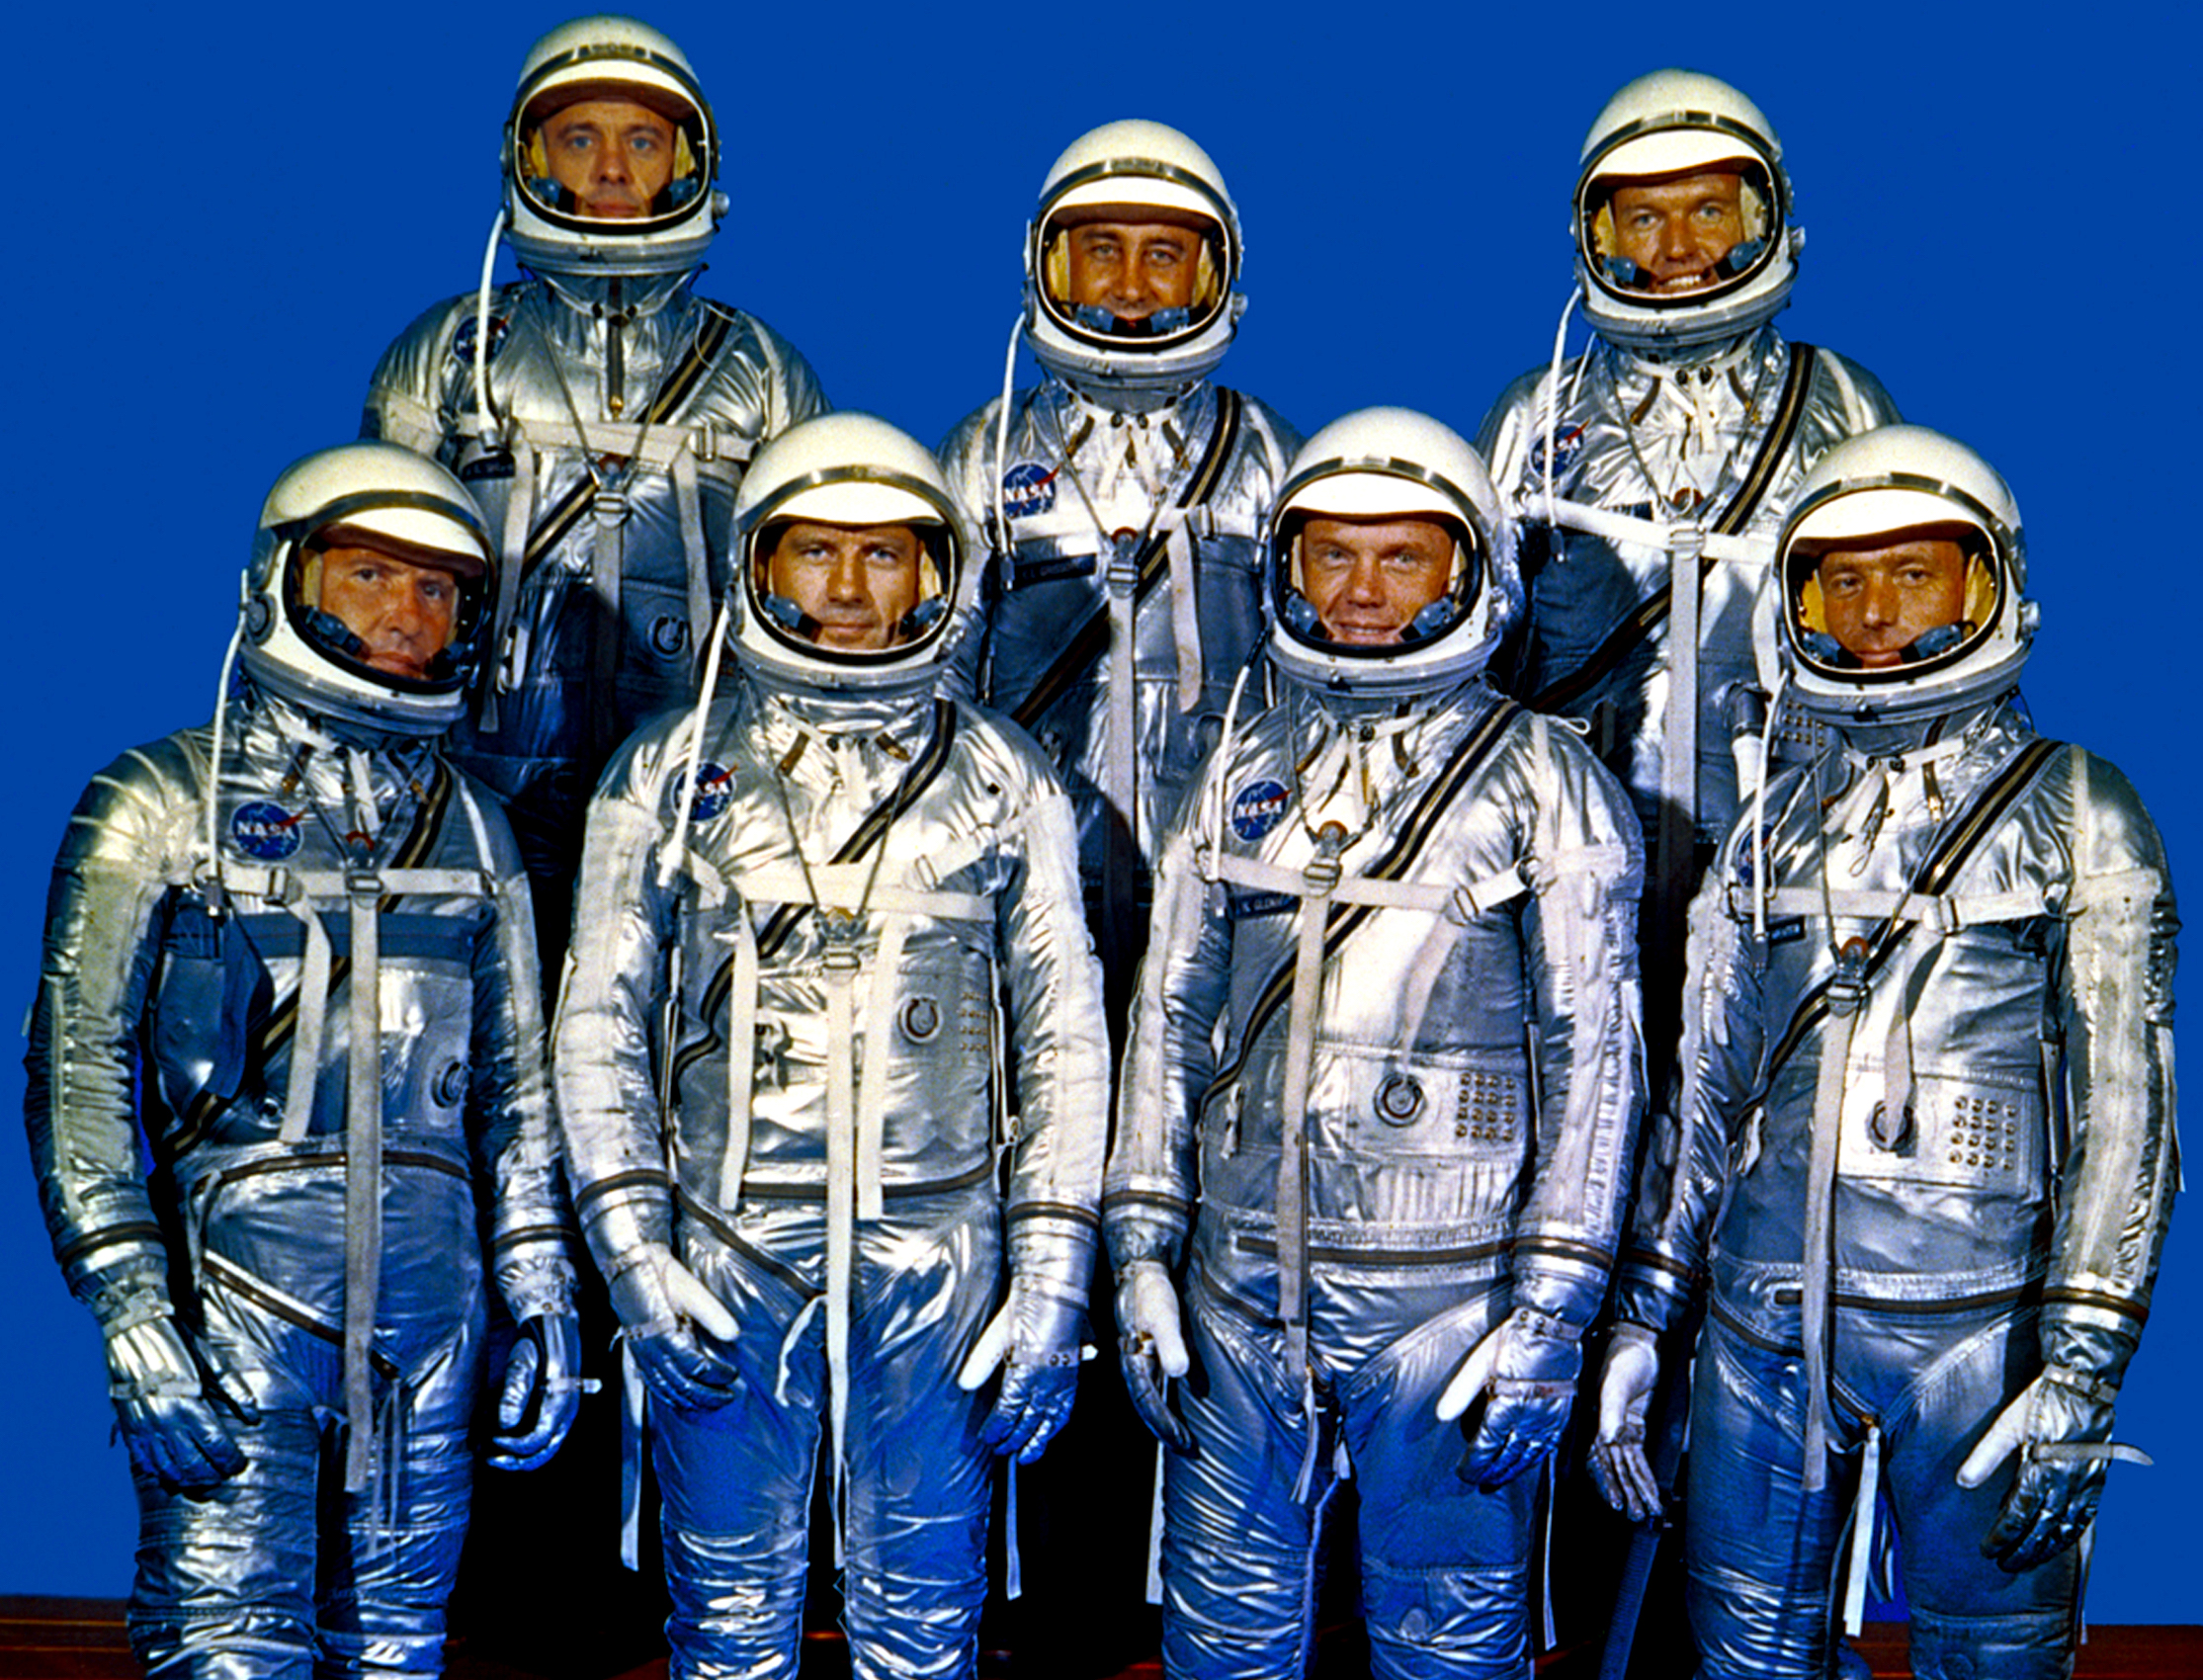 Original_7_Astronauts_in_Spacesuits_-_GPN-2000-001293